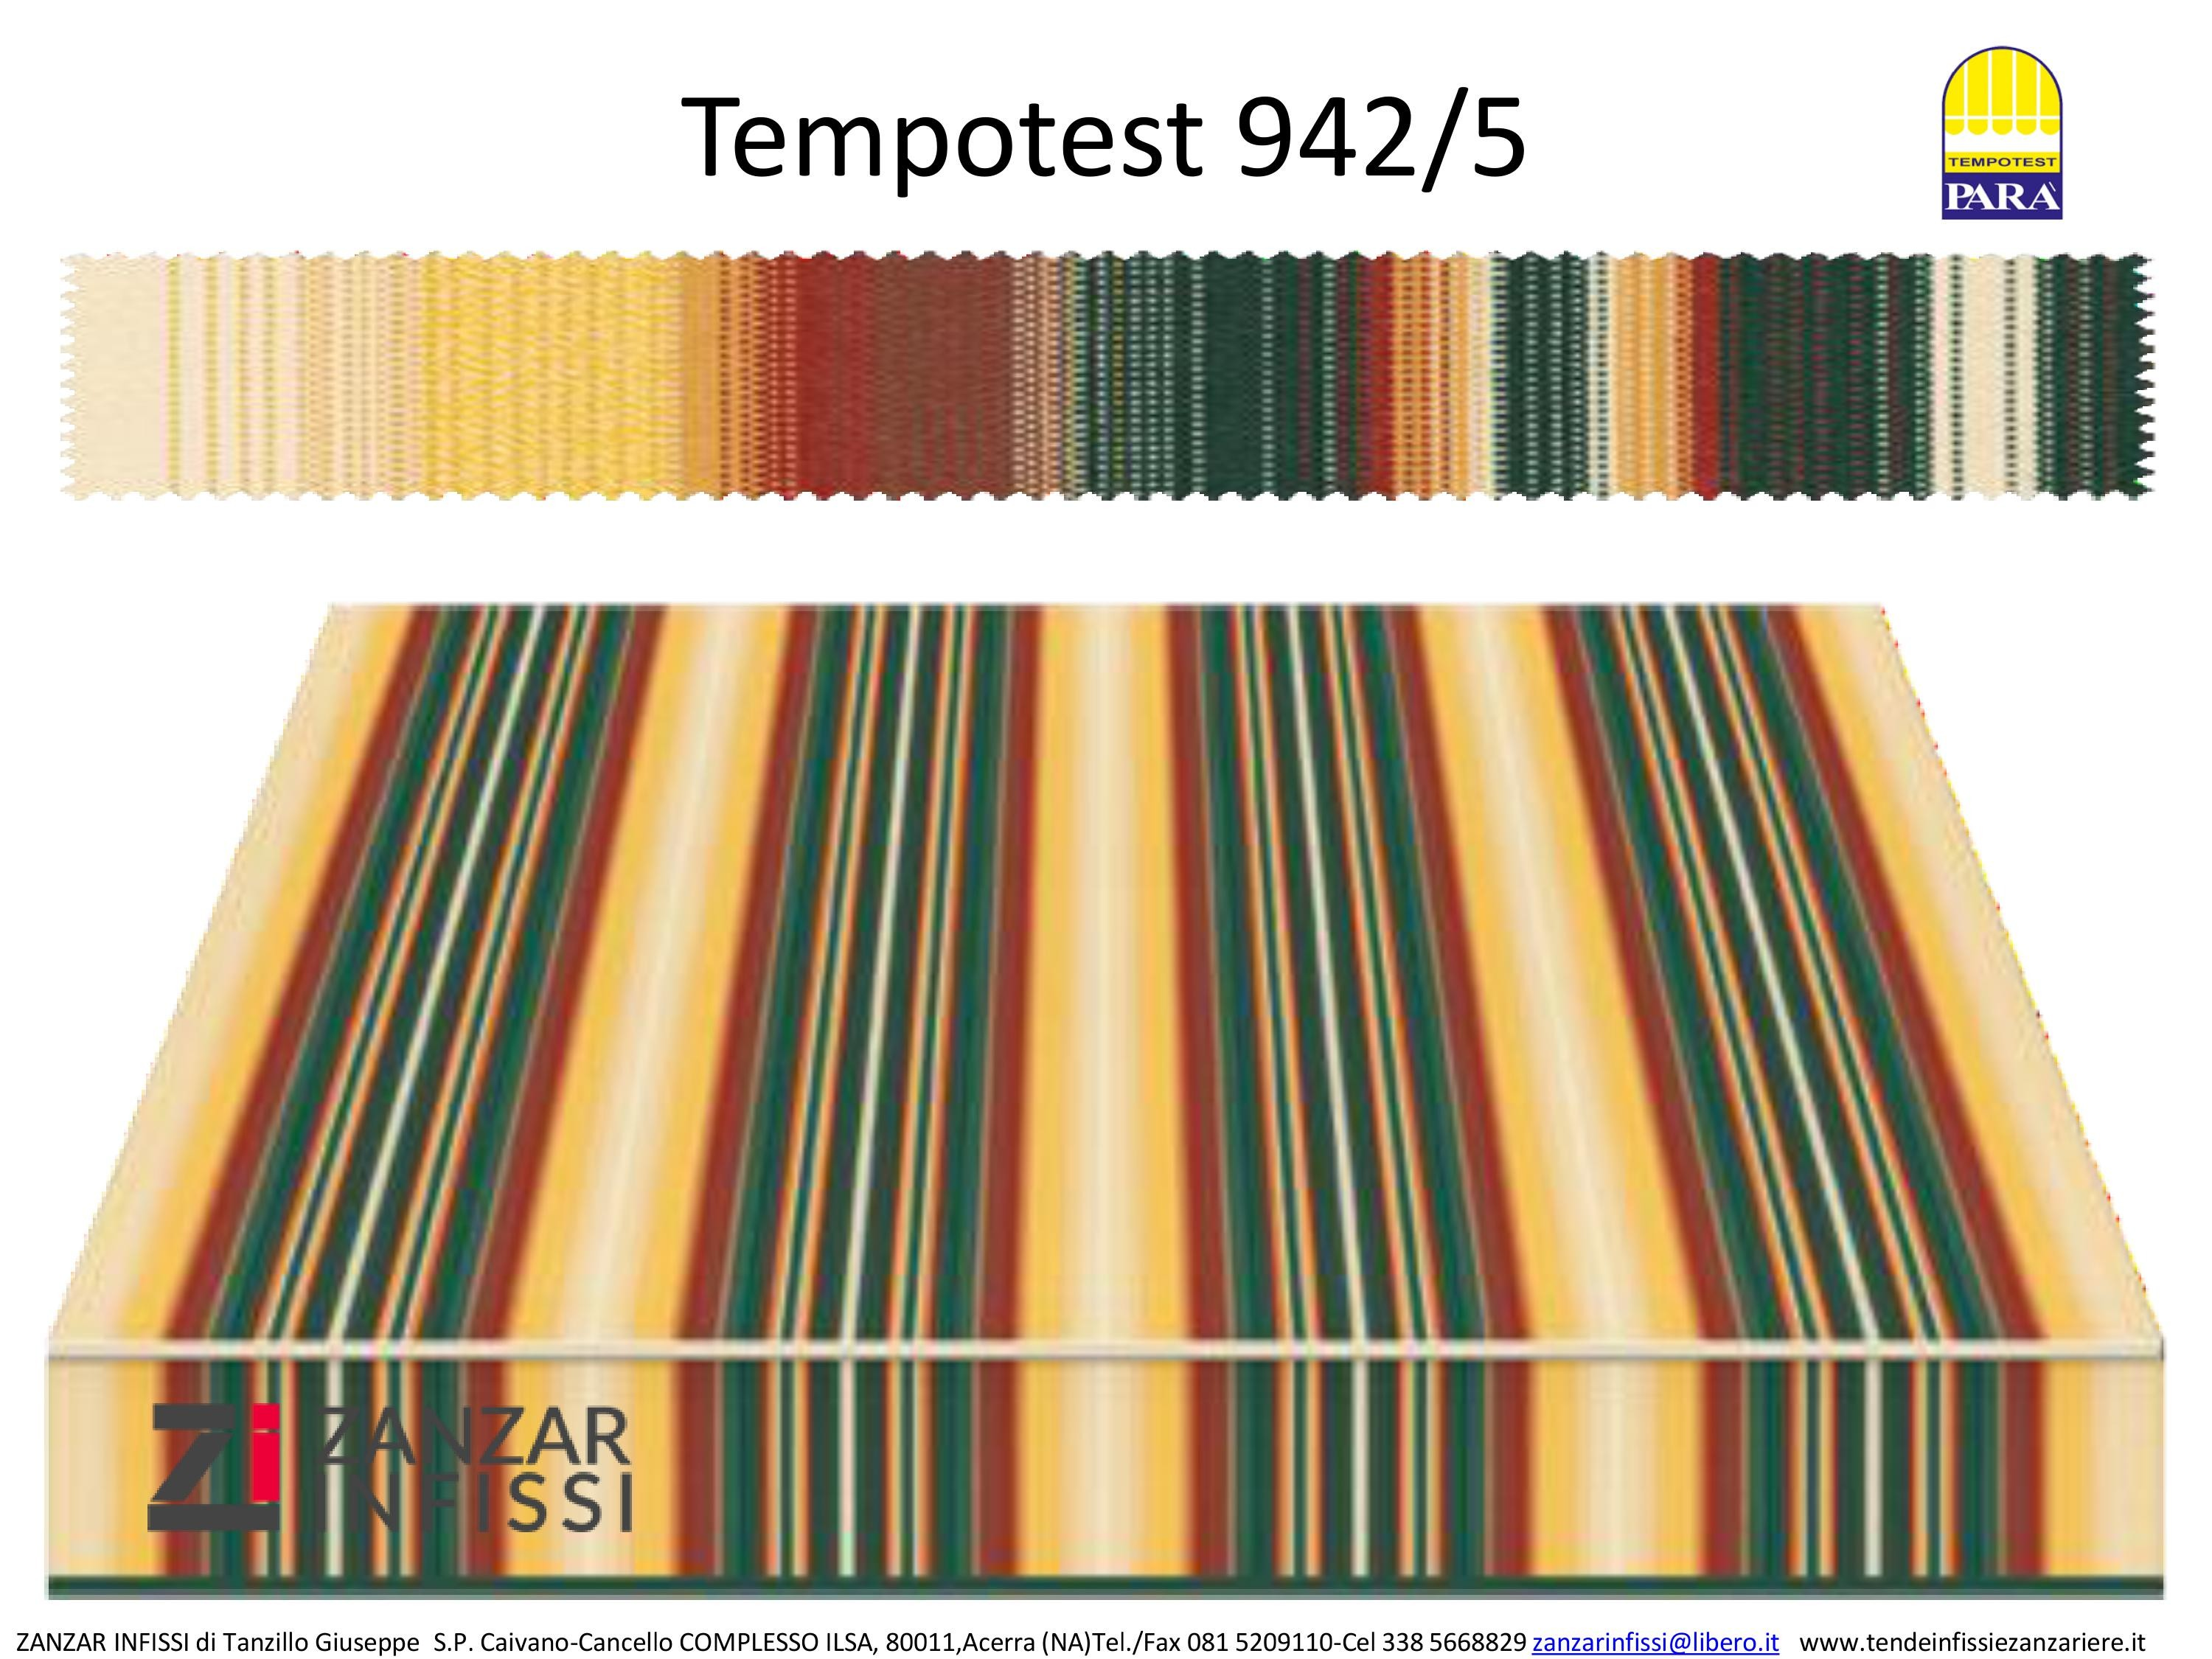 Tempotest 942/5